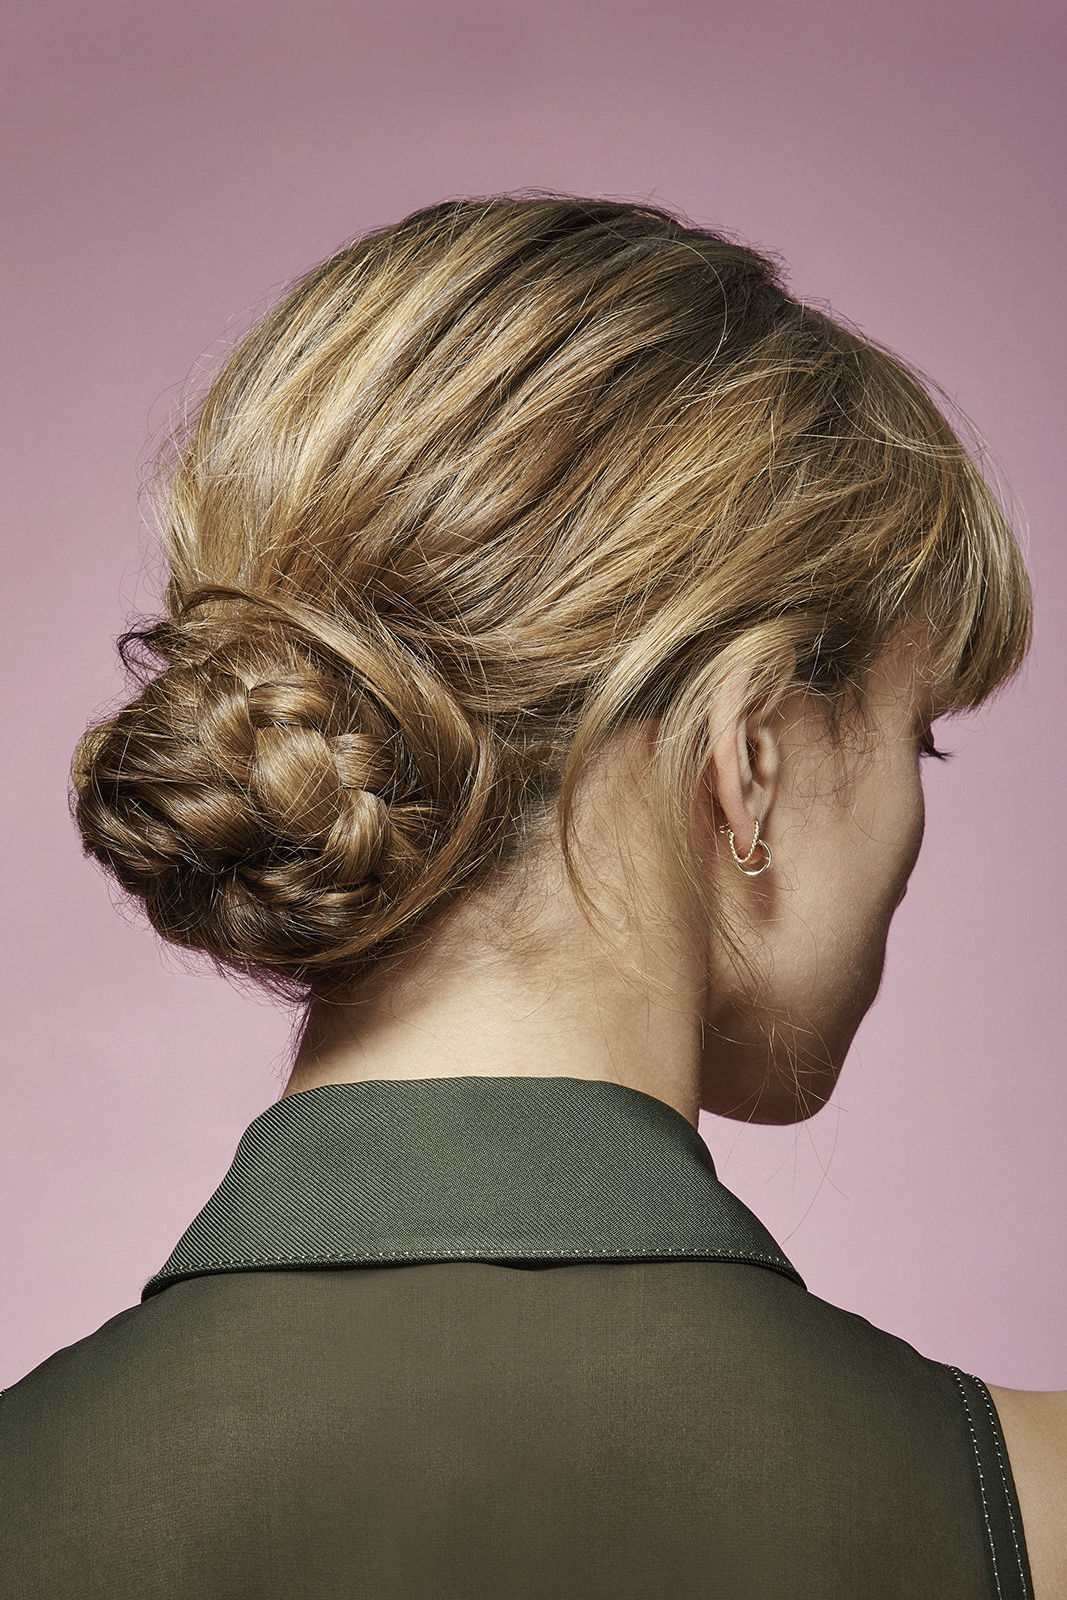 The Easiest Way to Elevate an Everyday Bun